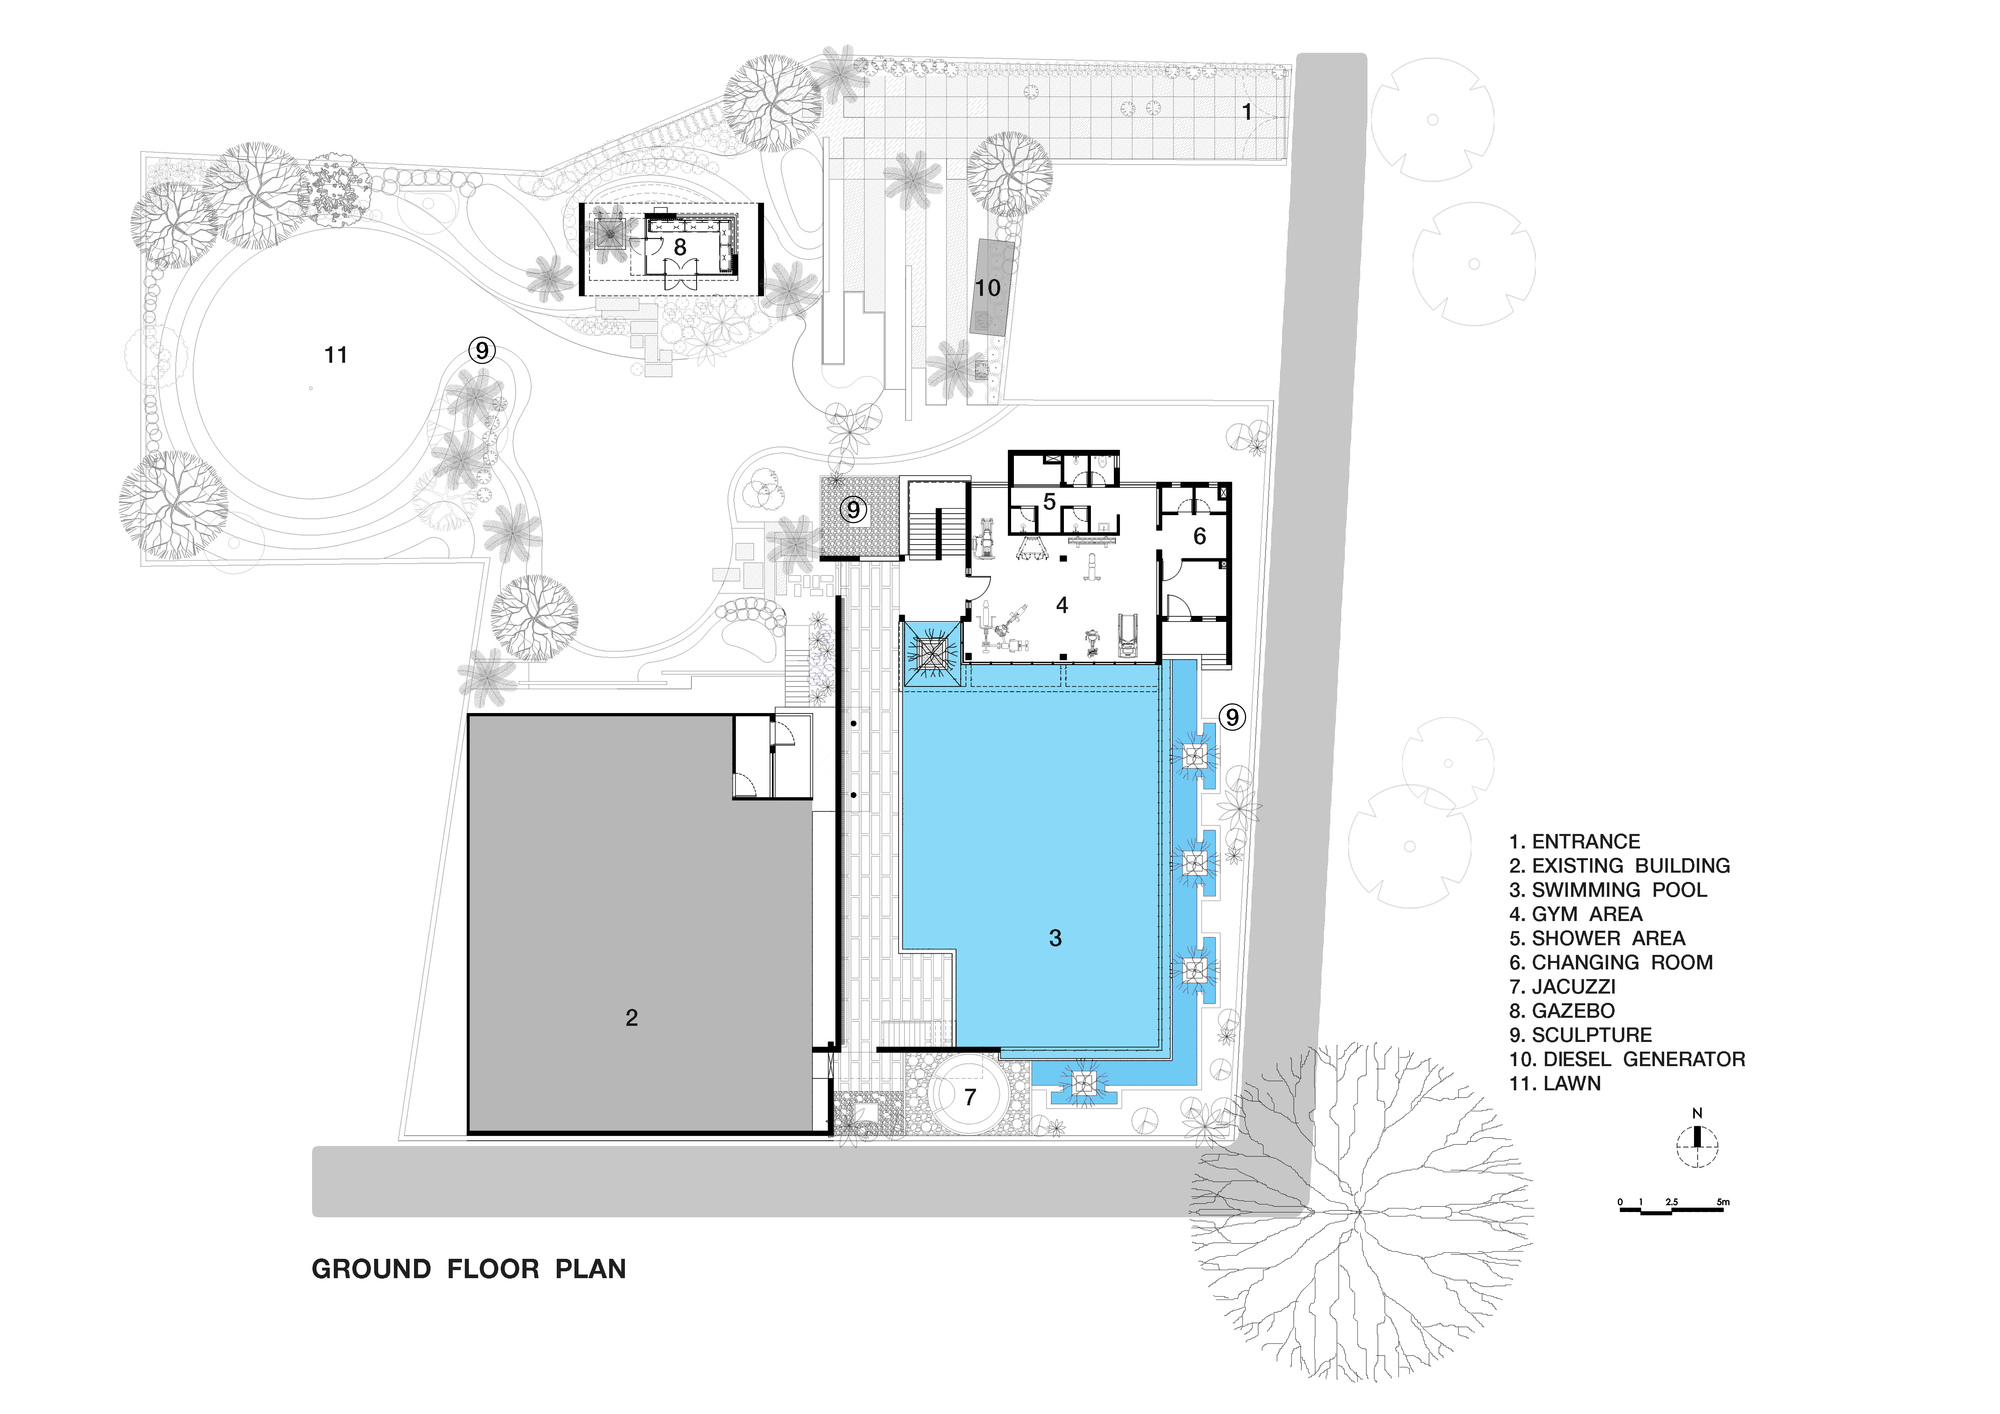 Gallery of pool house abin design studio 21 for Swimming pool floor plan